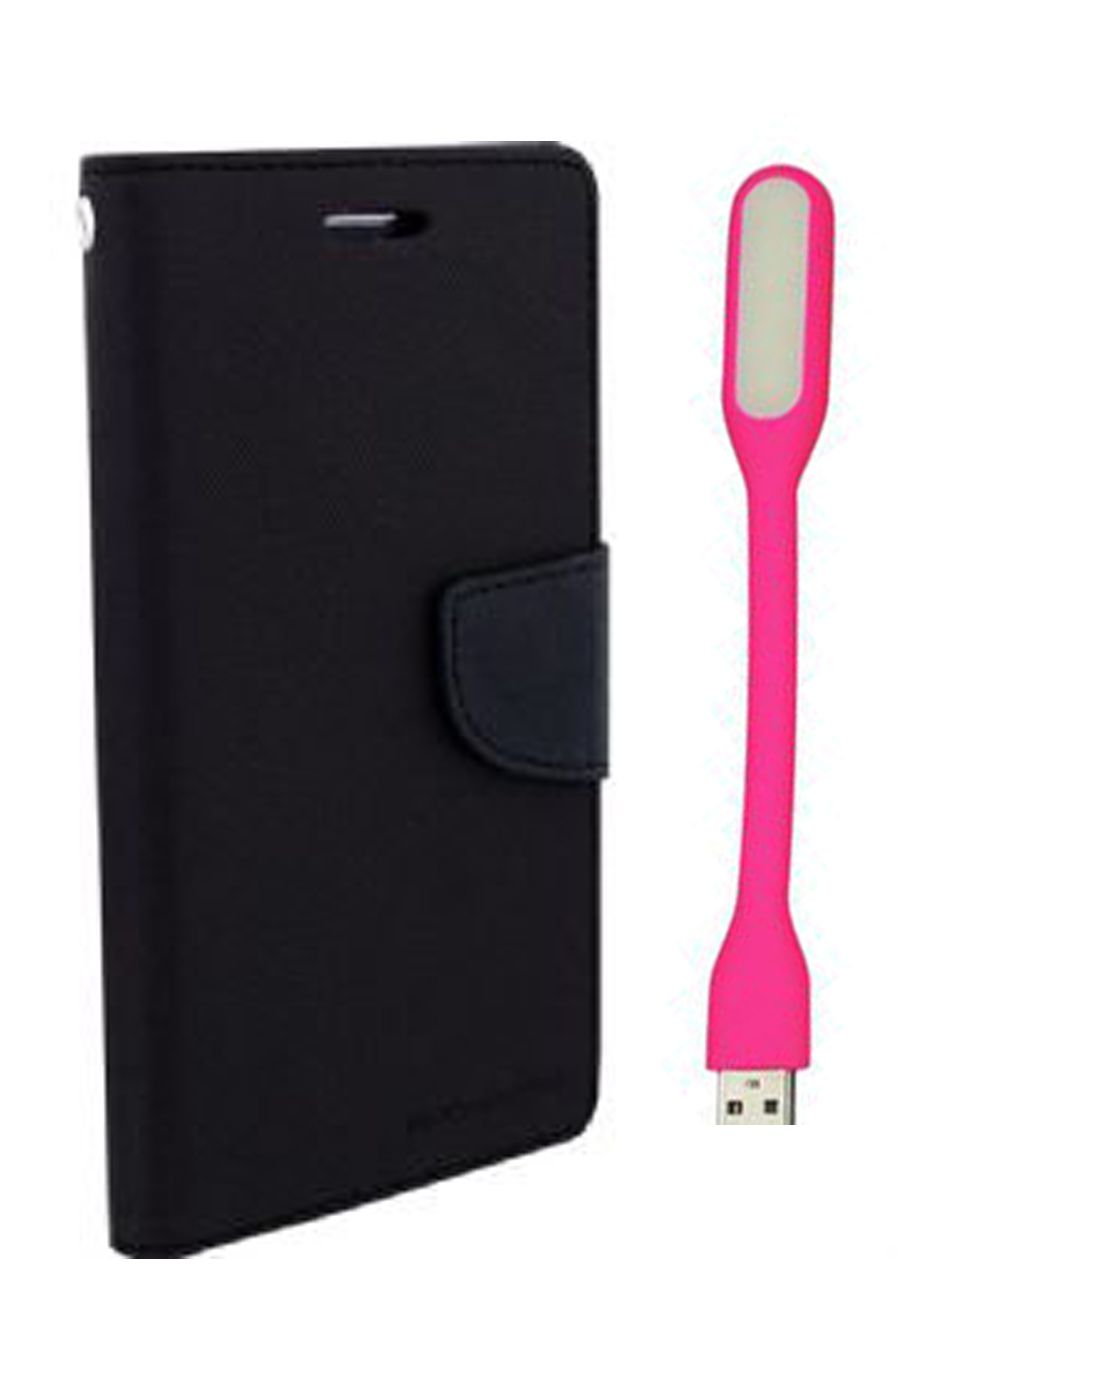 Wallet Flip Case Back Cover For Redmi 1s -(Black) + Flexible Mini LED Stick Lamp Light By Style Crome